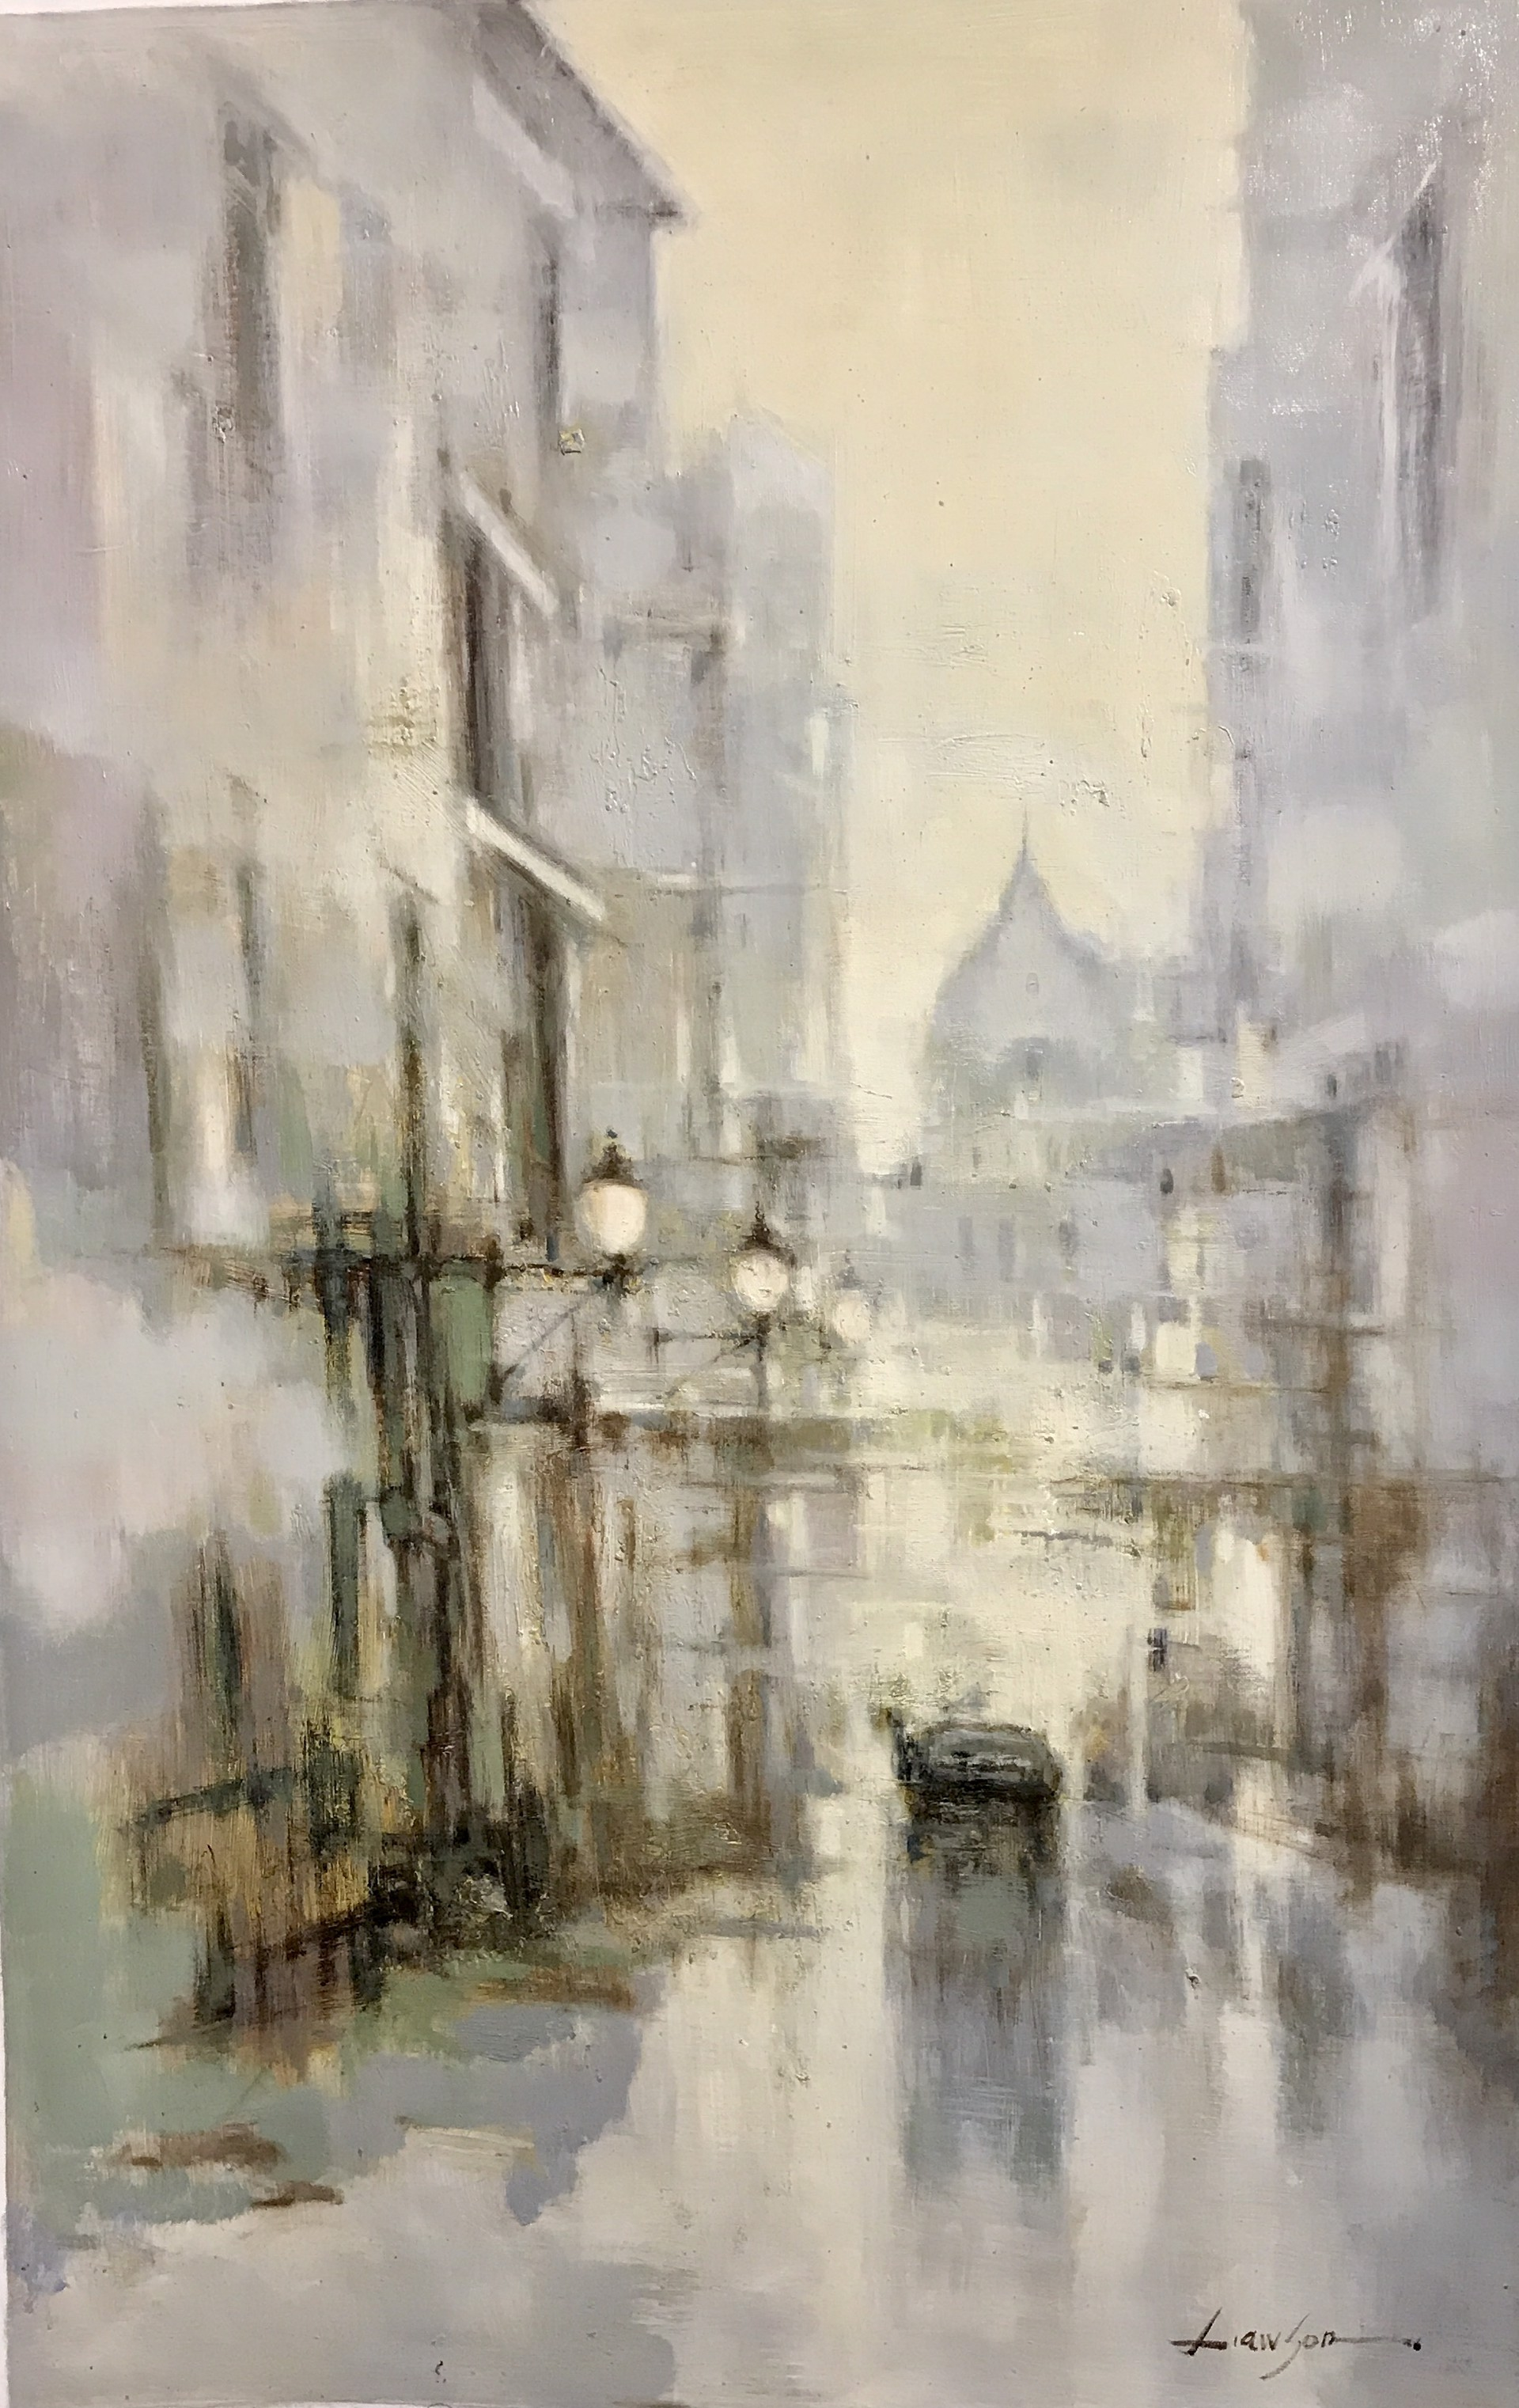 LOOSE CITYSCAPE by LAWSON